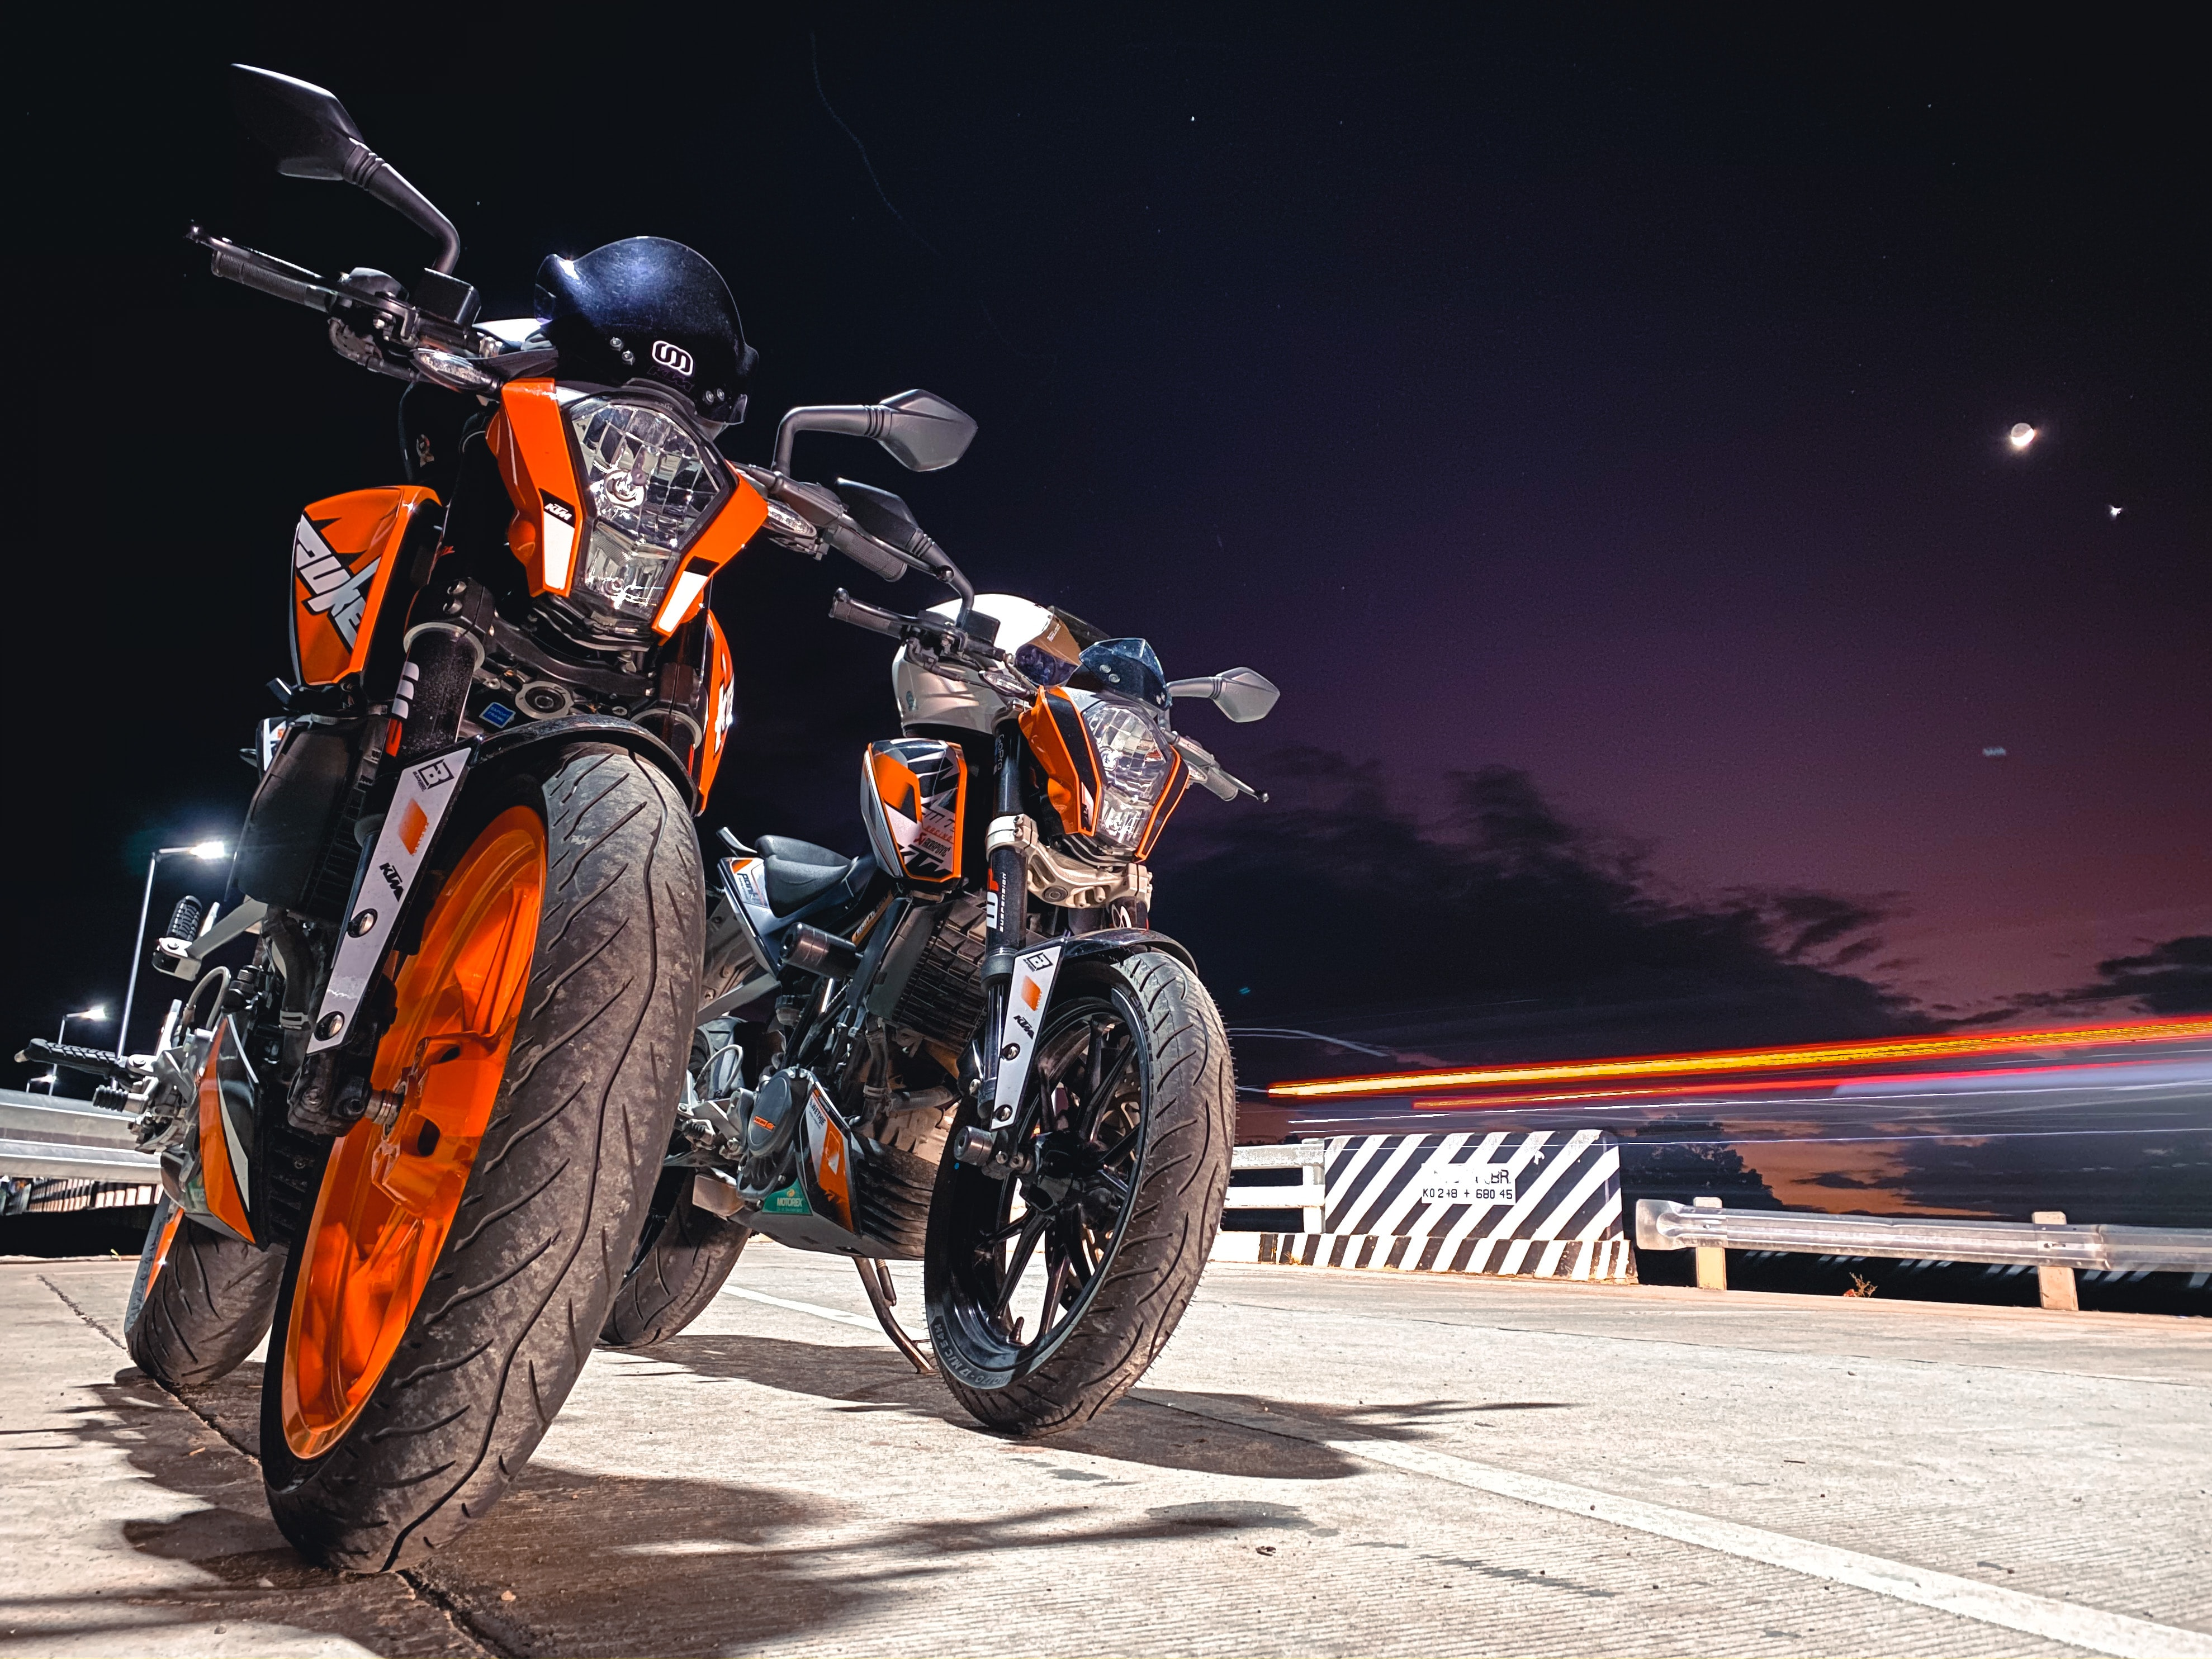 59947 free wallpaper 540x960 for phone, download images Bikes, Night, Motorcycles, Road, Ktm, Stories 540x960 for mobile